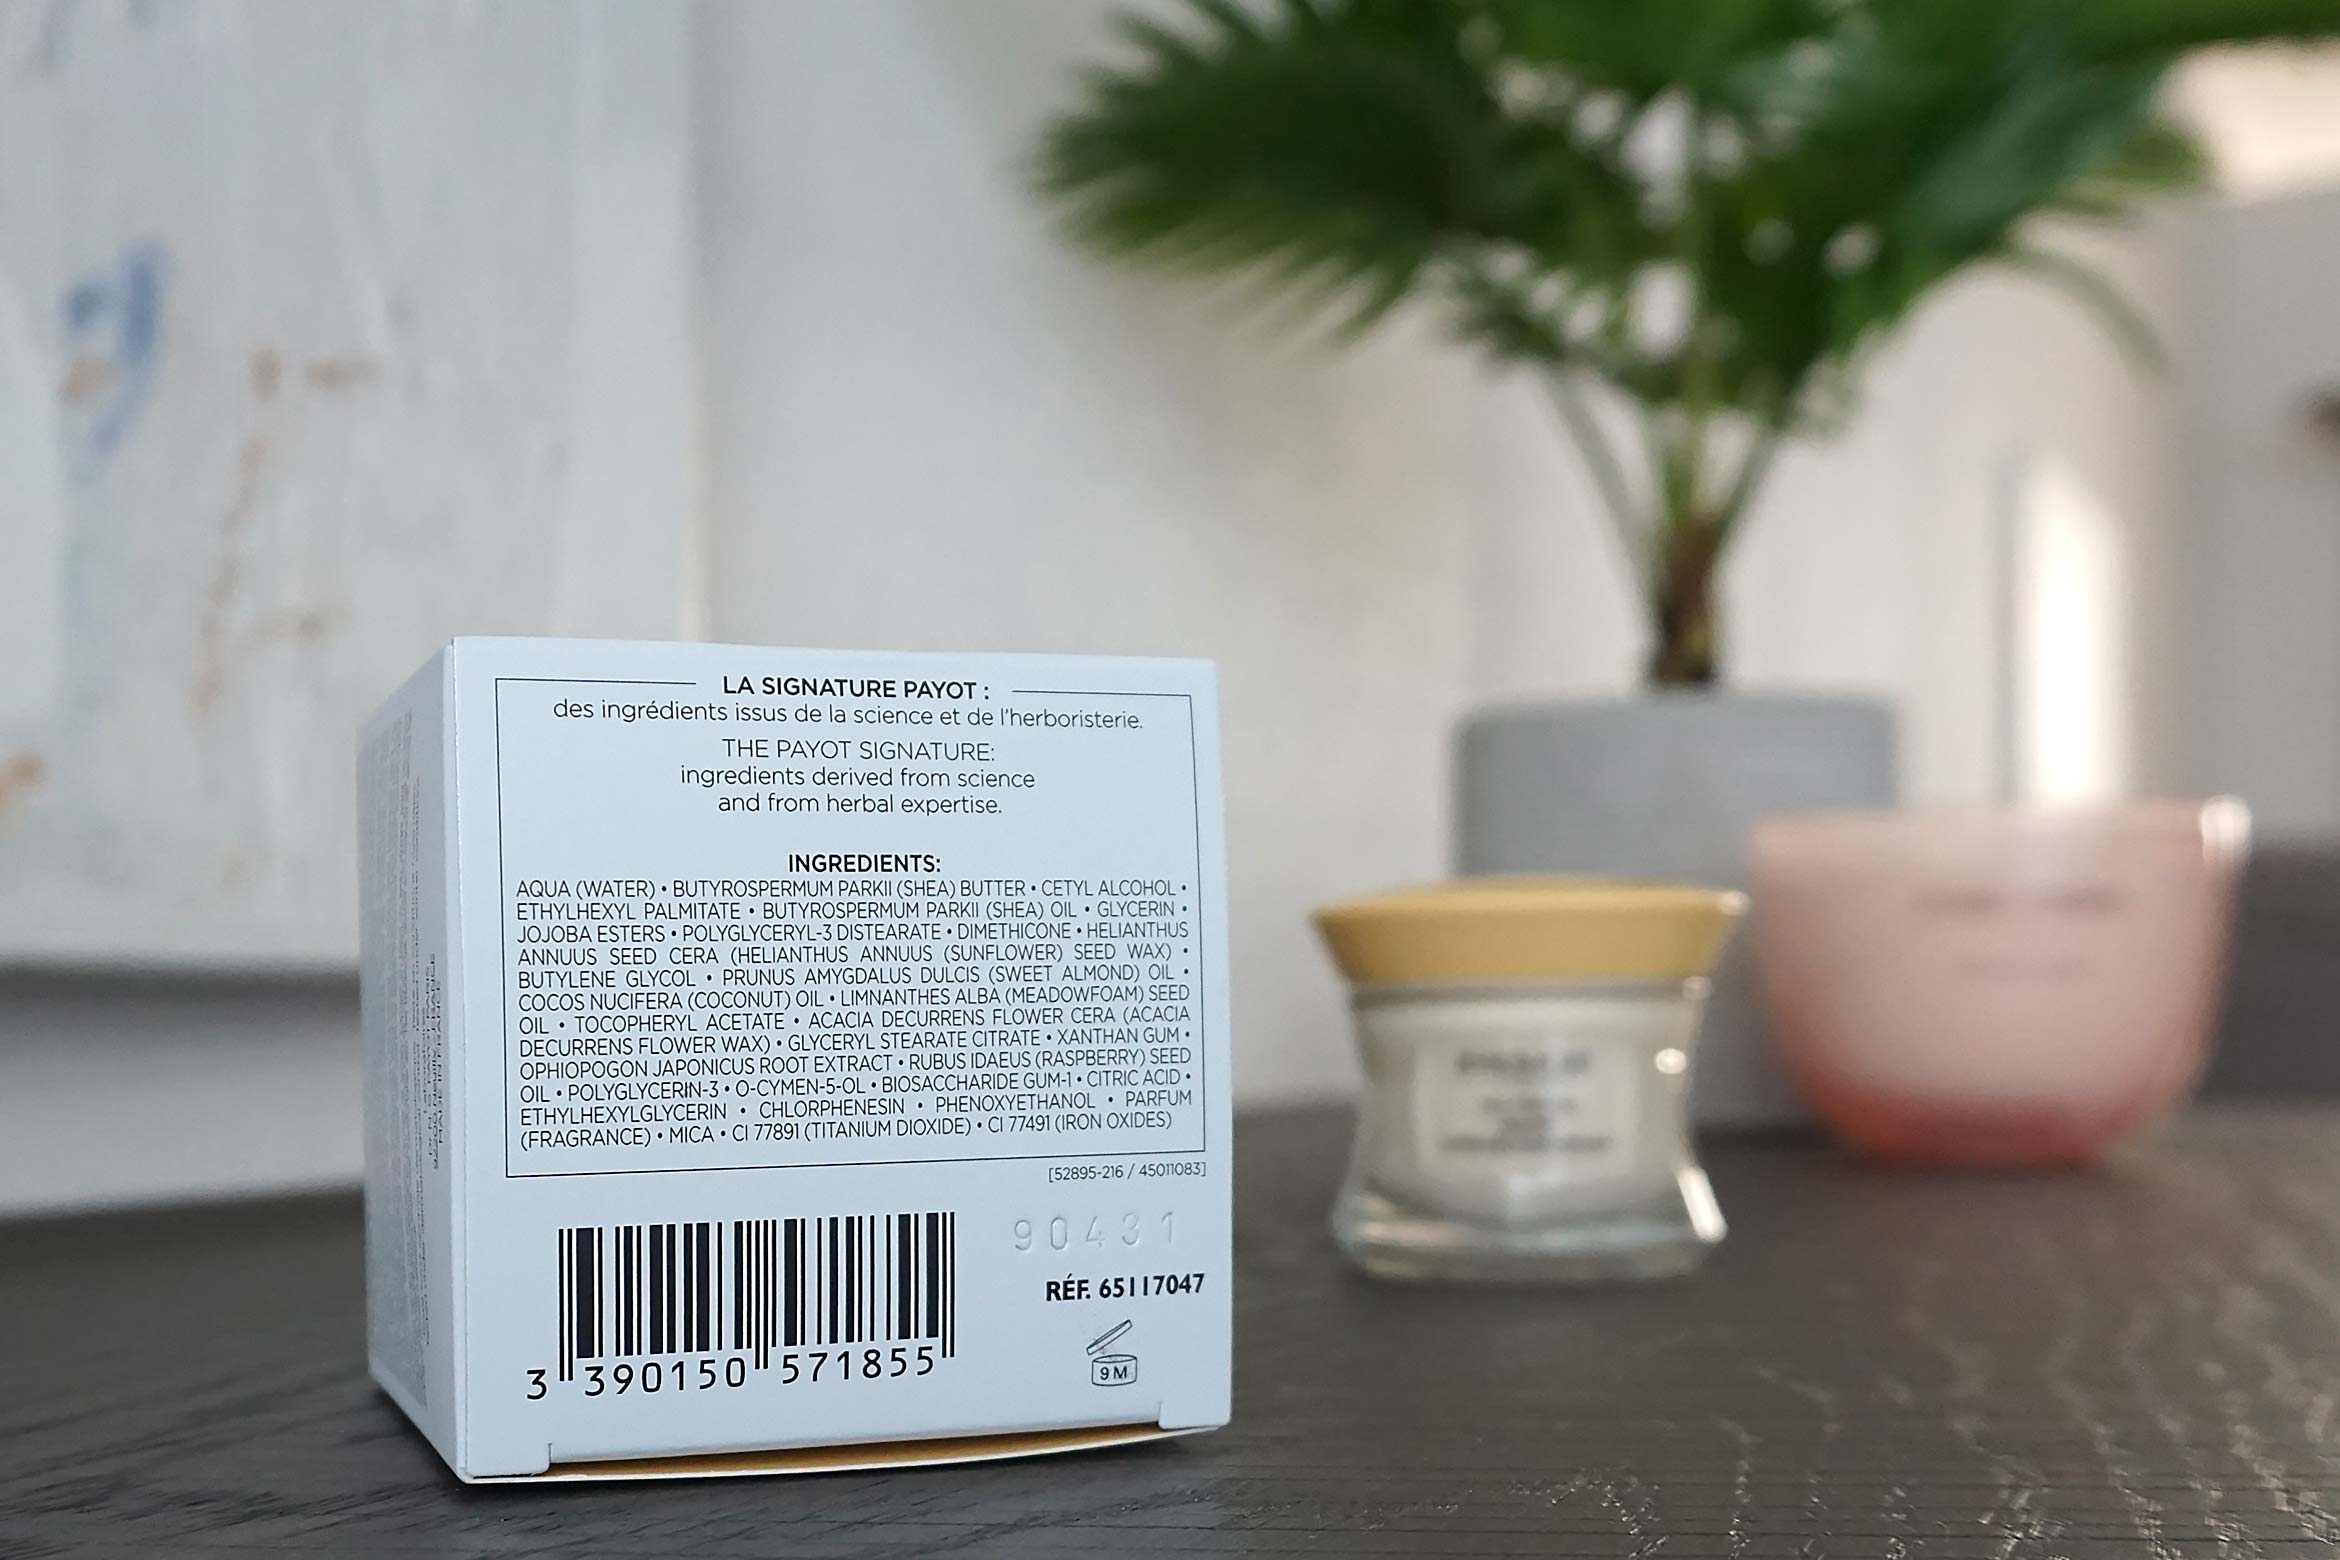 payot nutricia baume super reconfortant review-1